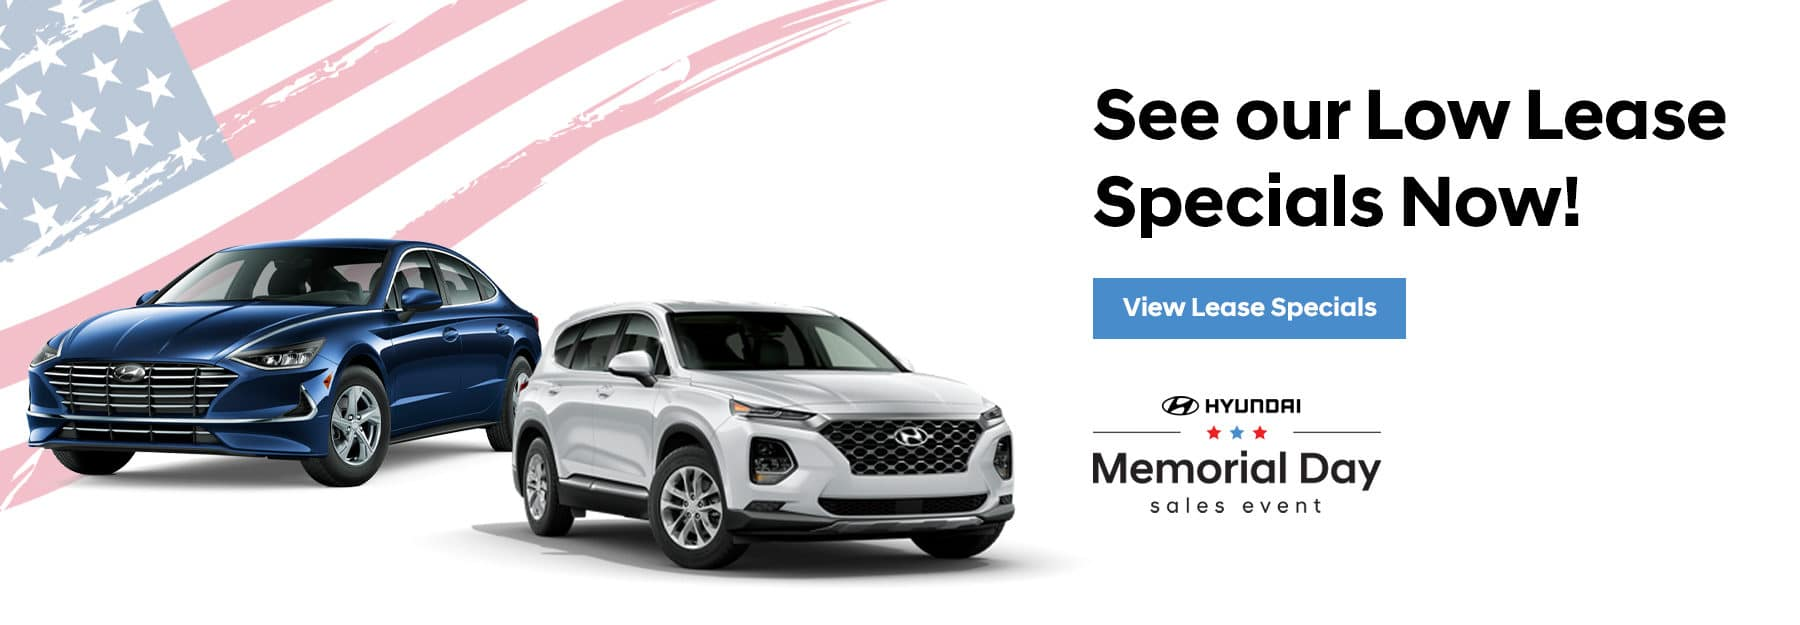 Low Lease Specials